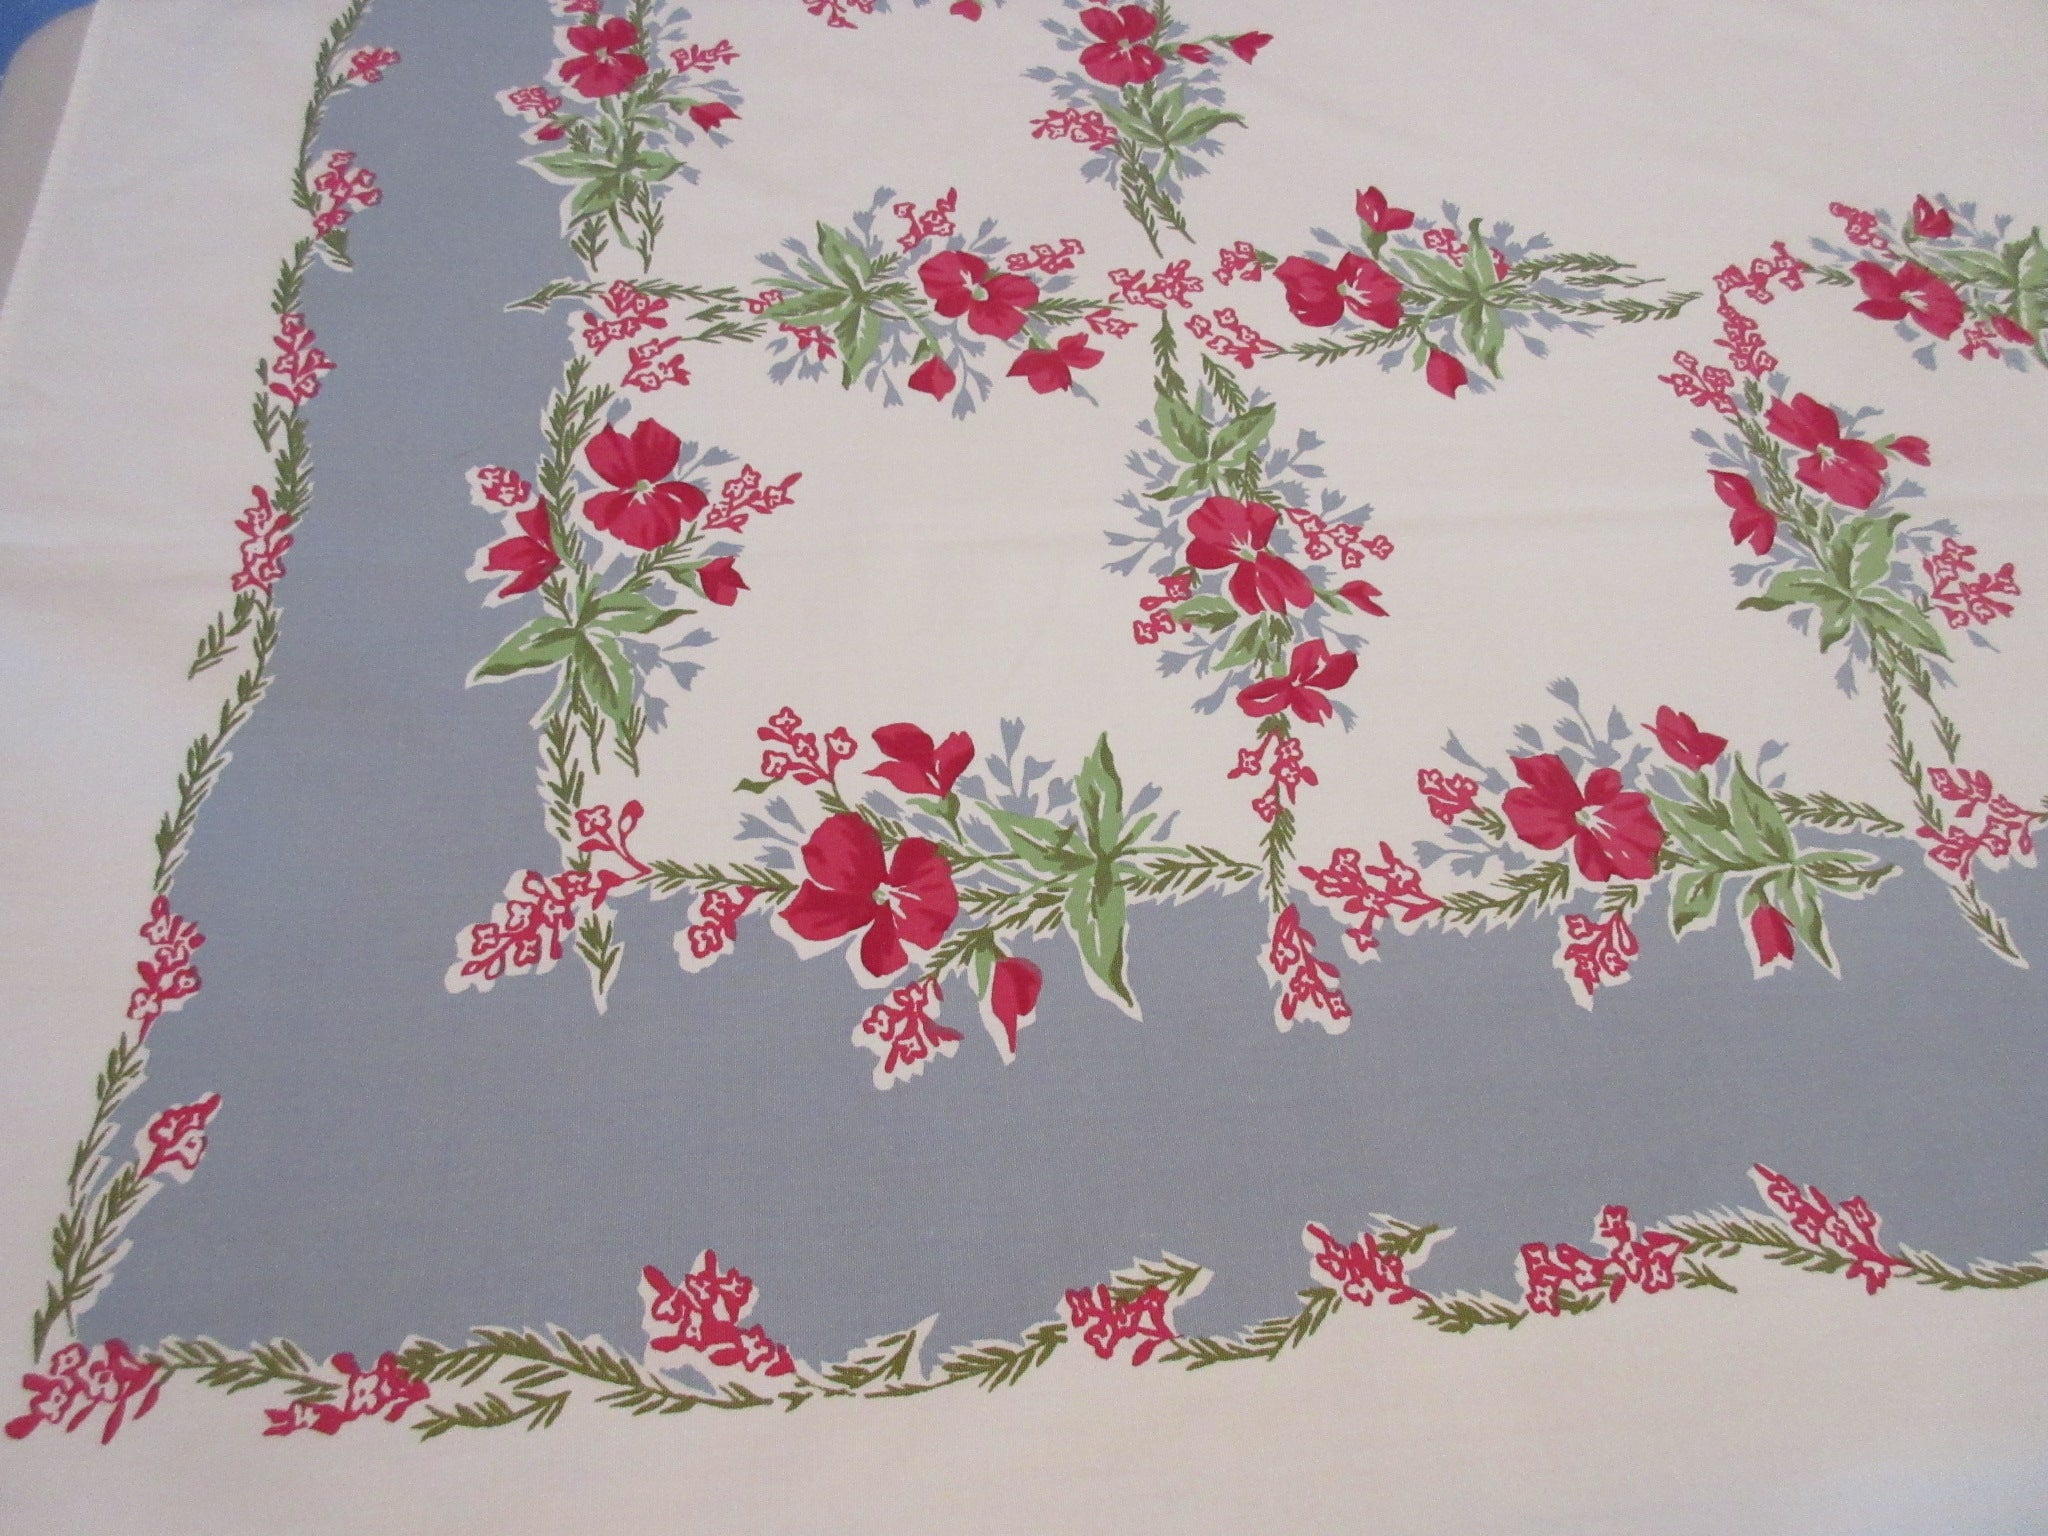 Red Pink Violas on Gray Grid Floral Vintage Printed Tablecloth (62 X 51)